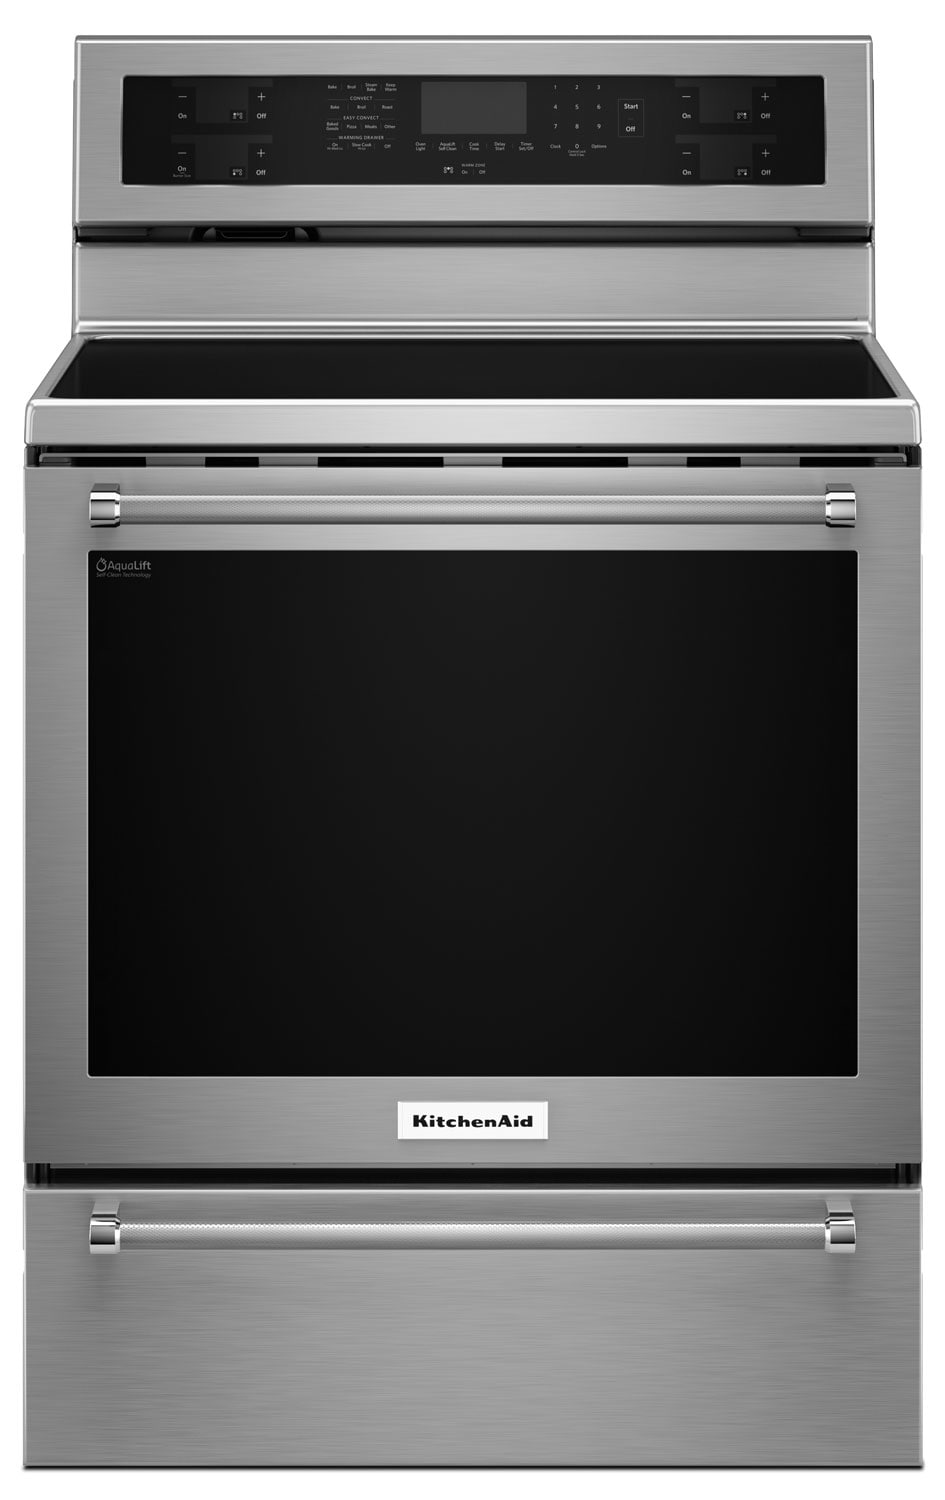 KitchenAid 6.4 Cu. Ft. Electric Convection Range with Warming Drawer - Stainless Steel